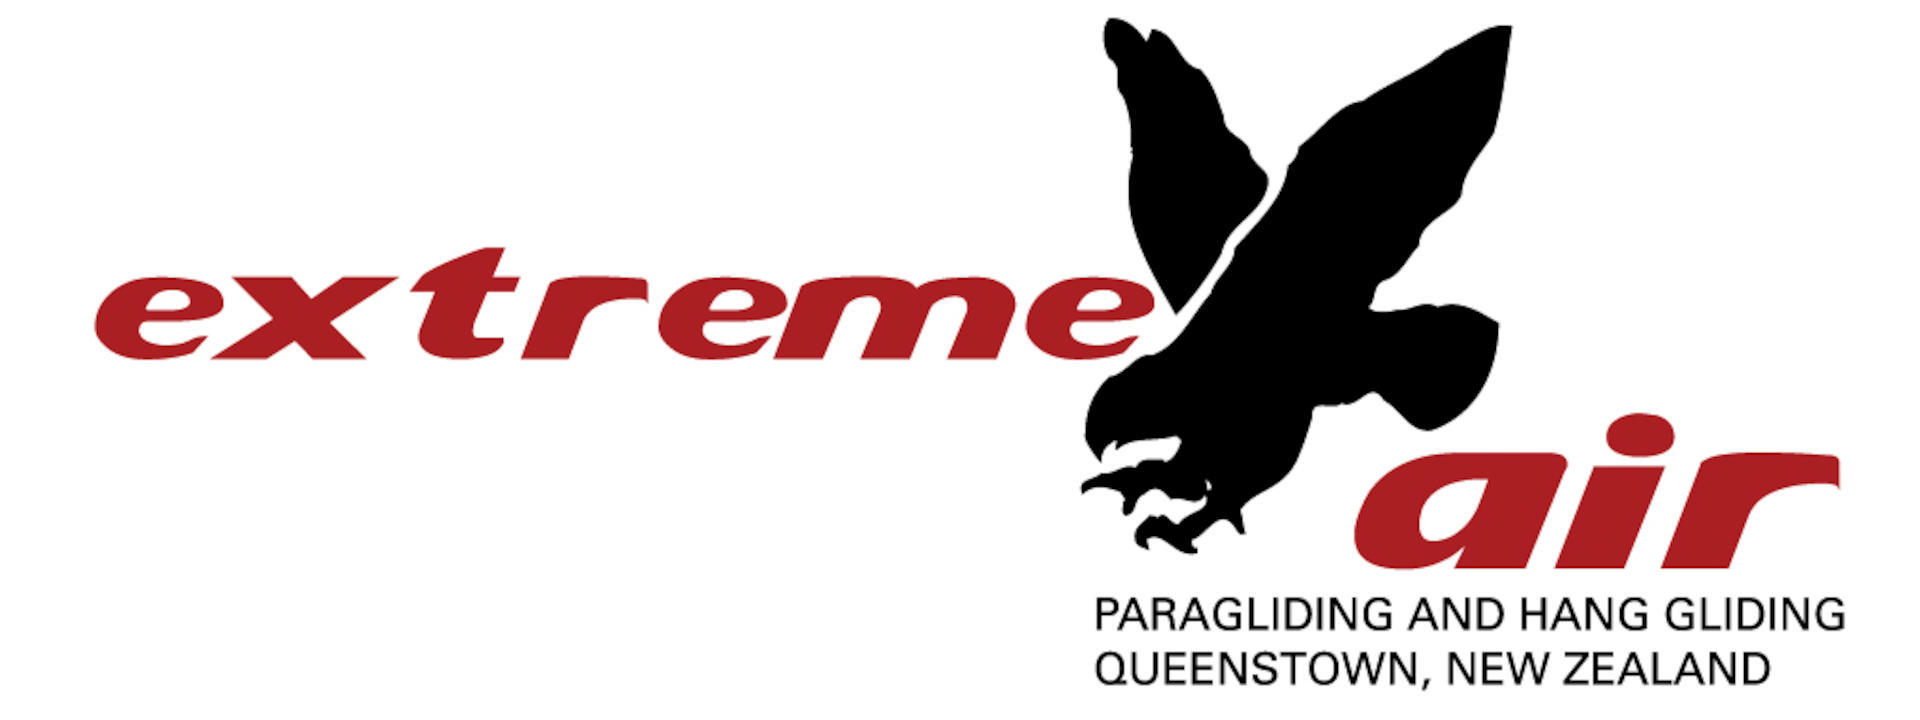 Exetreme Air logo Black-Bird